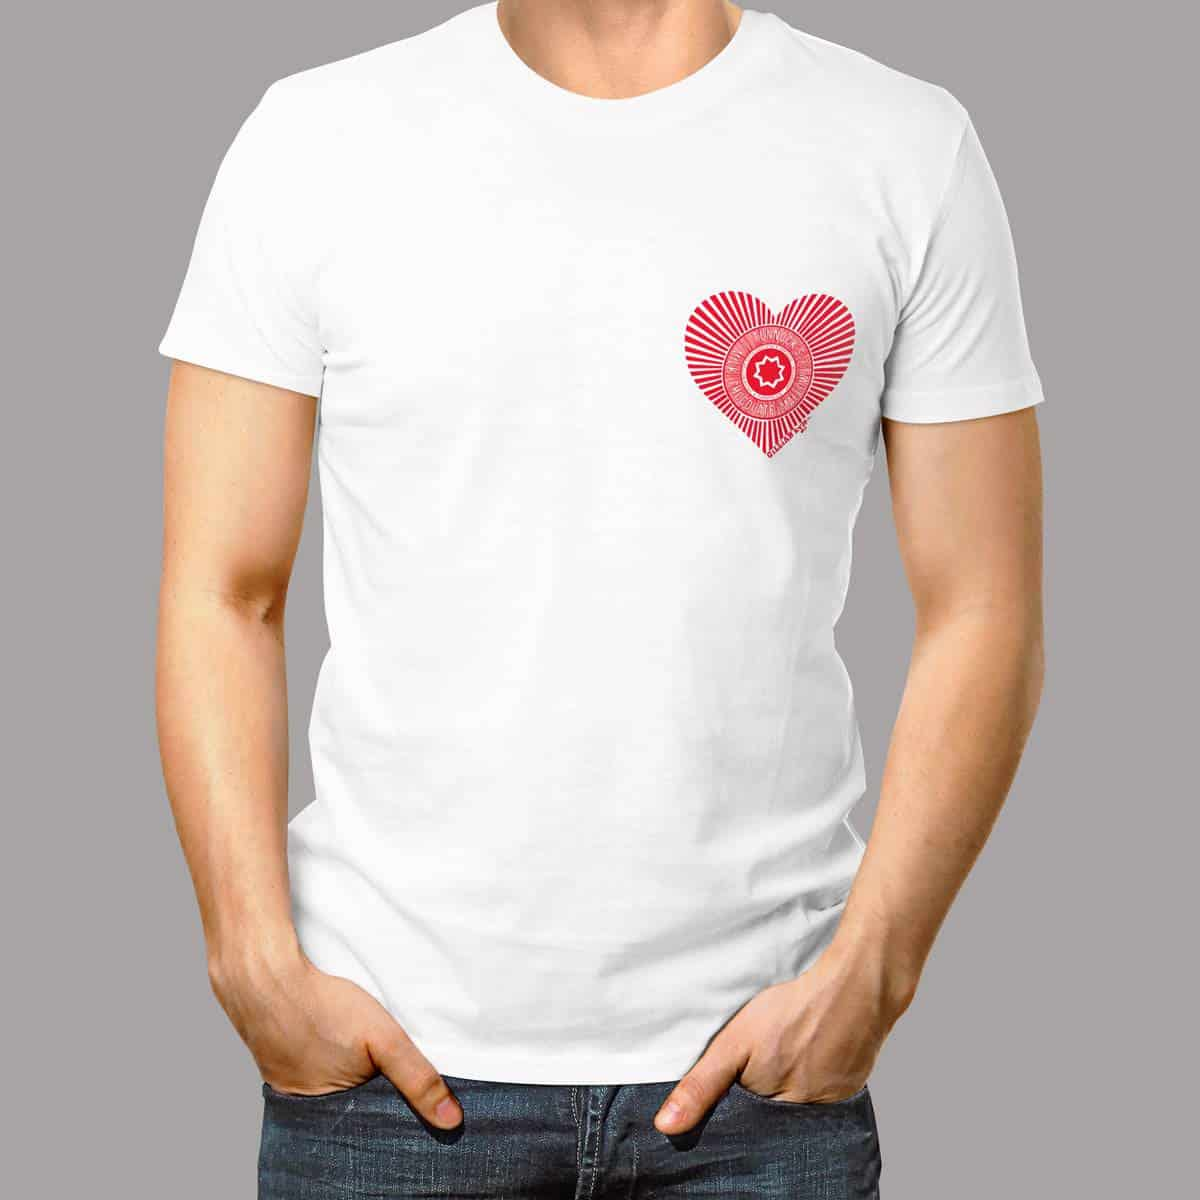 Mens t-shirt with Love Tunnock's heart design by Gillian Kyle - great Valentines gift for a man